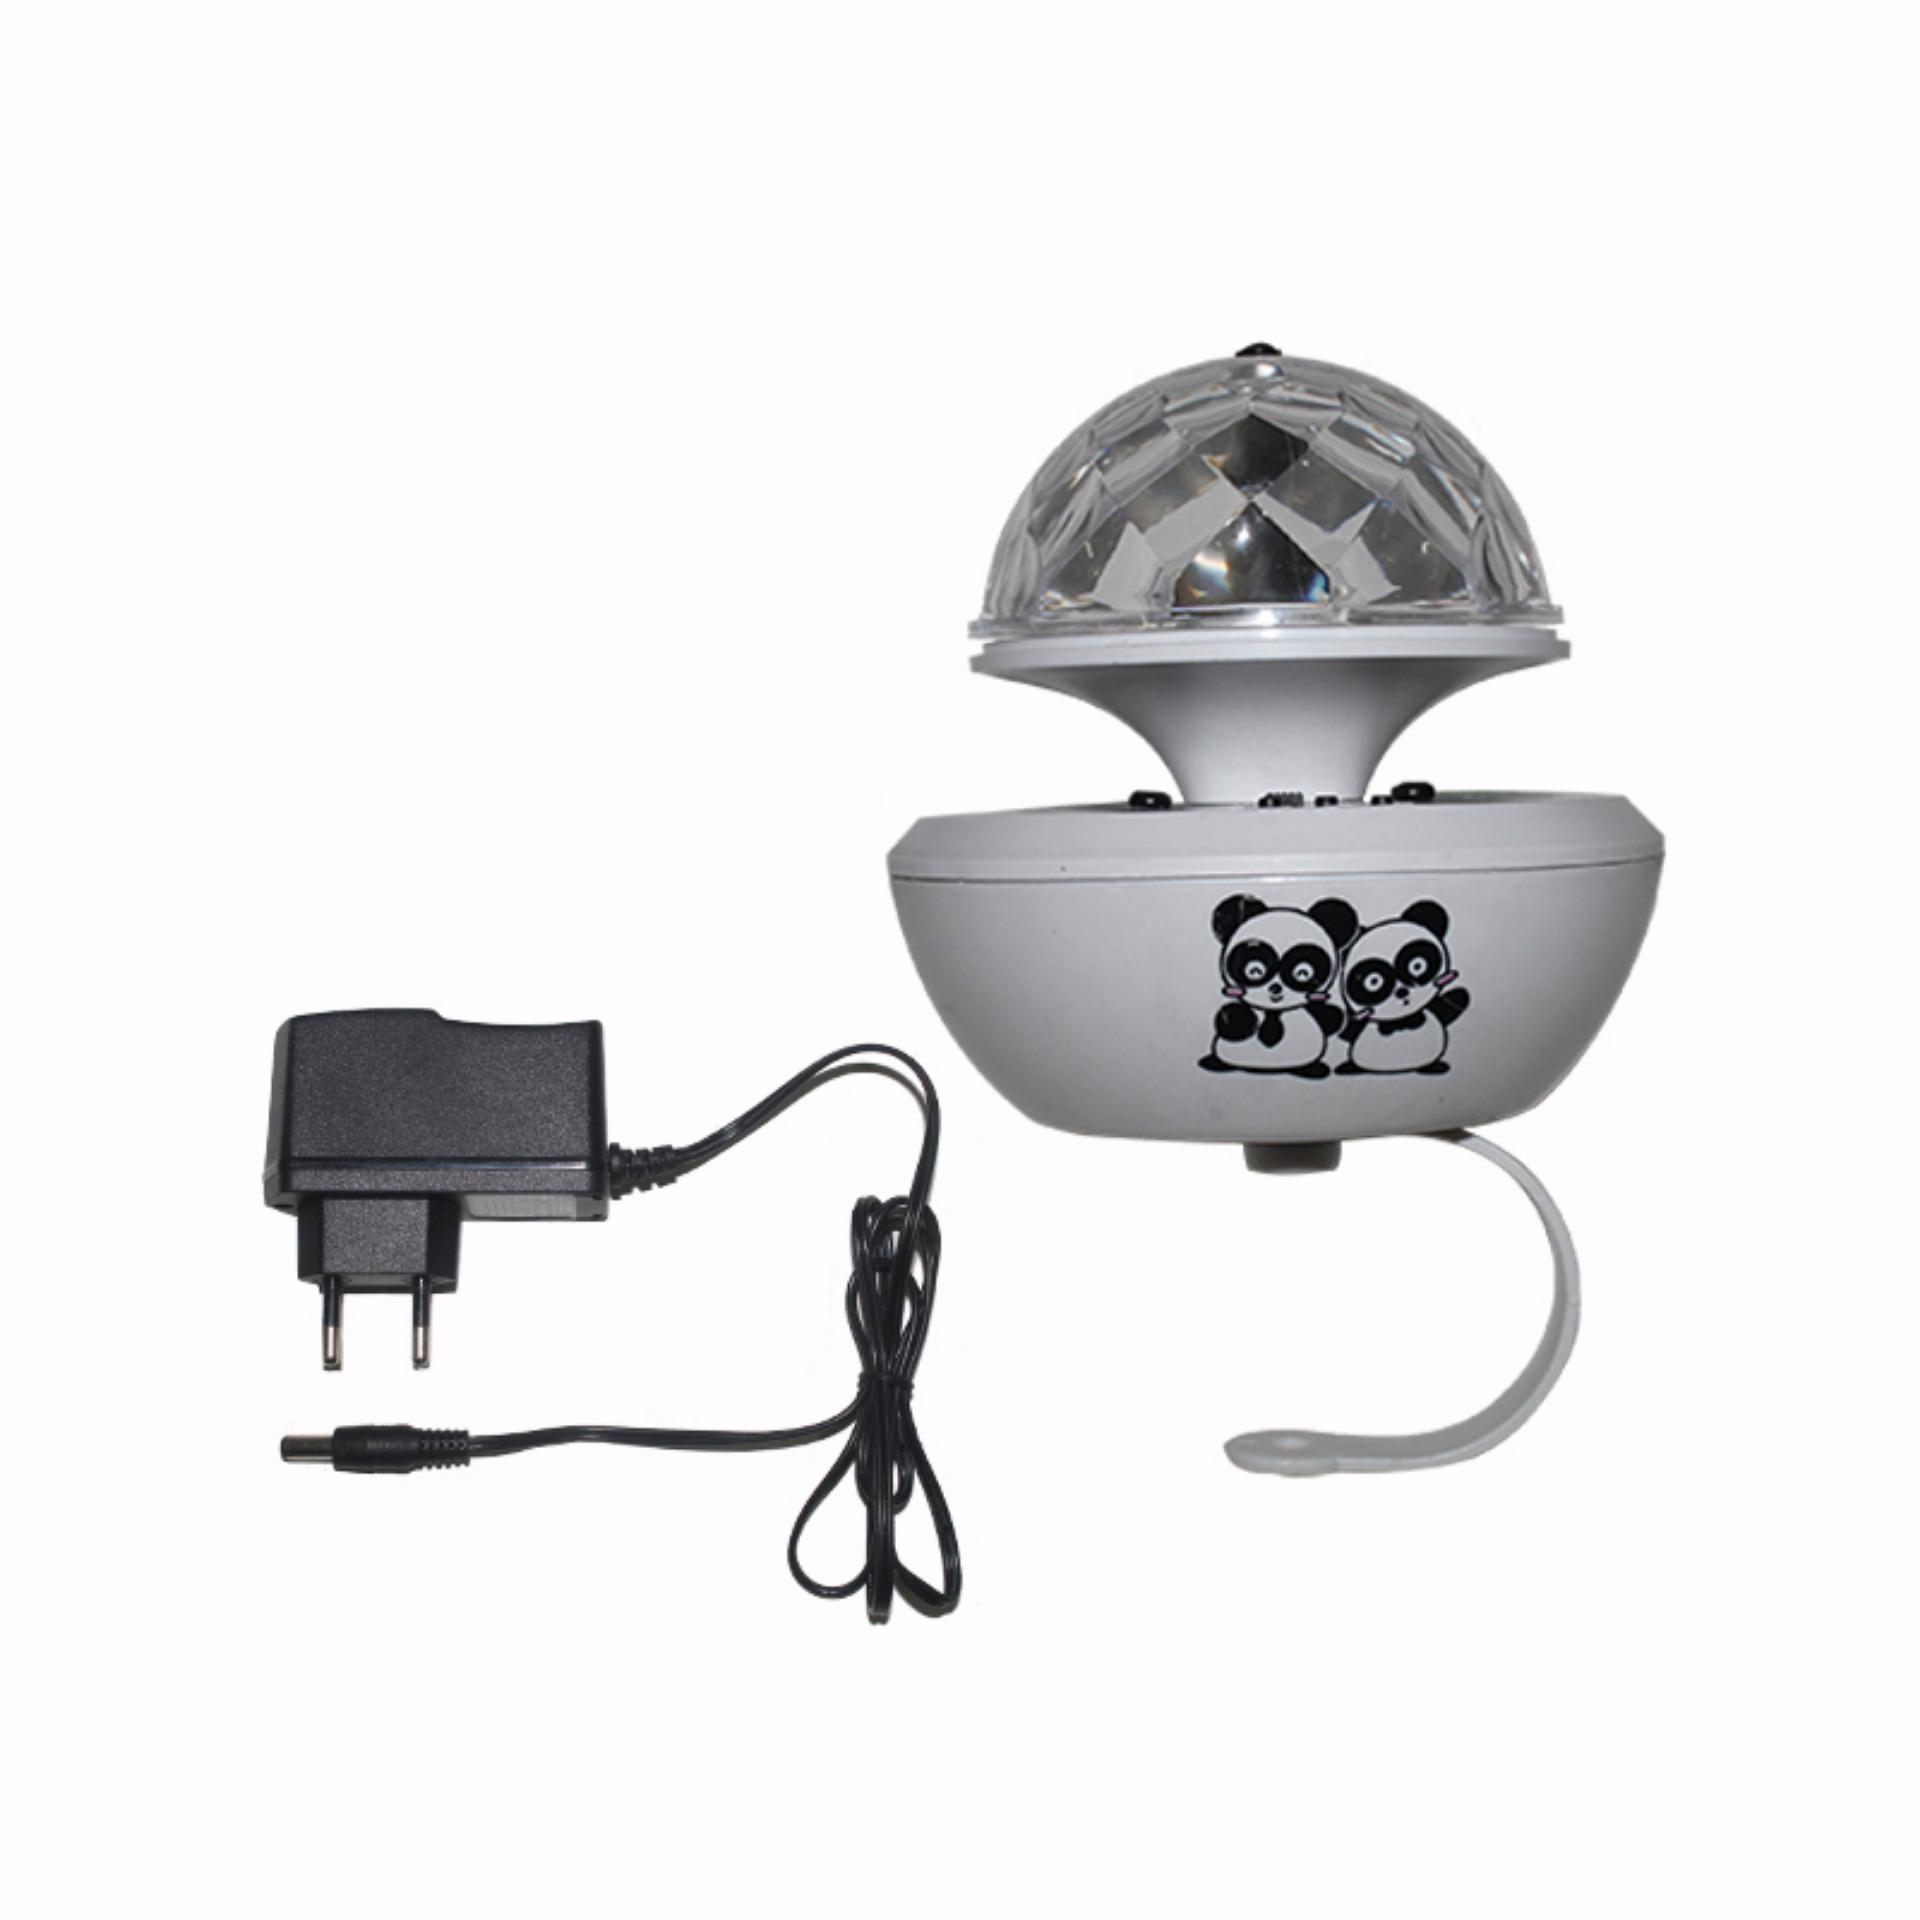 Beli Eelic Dib Me10 Lampu Hias Disco Ball Mini Mp3 Led Terbaru